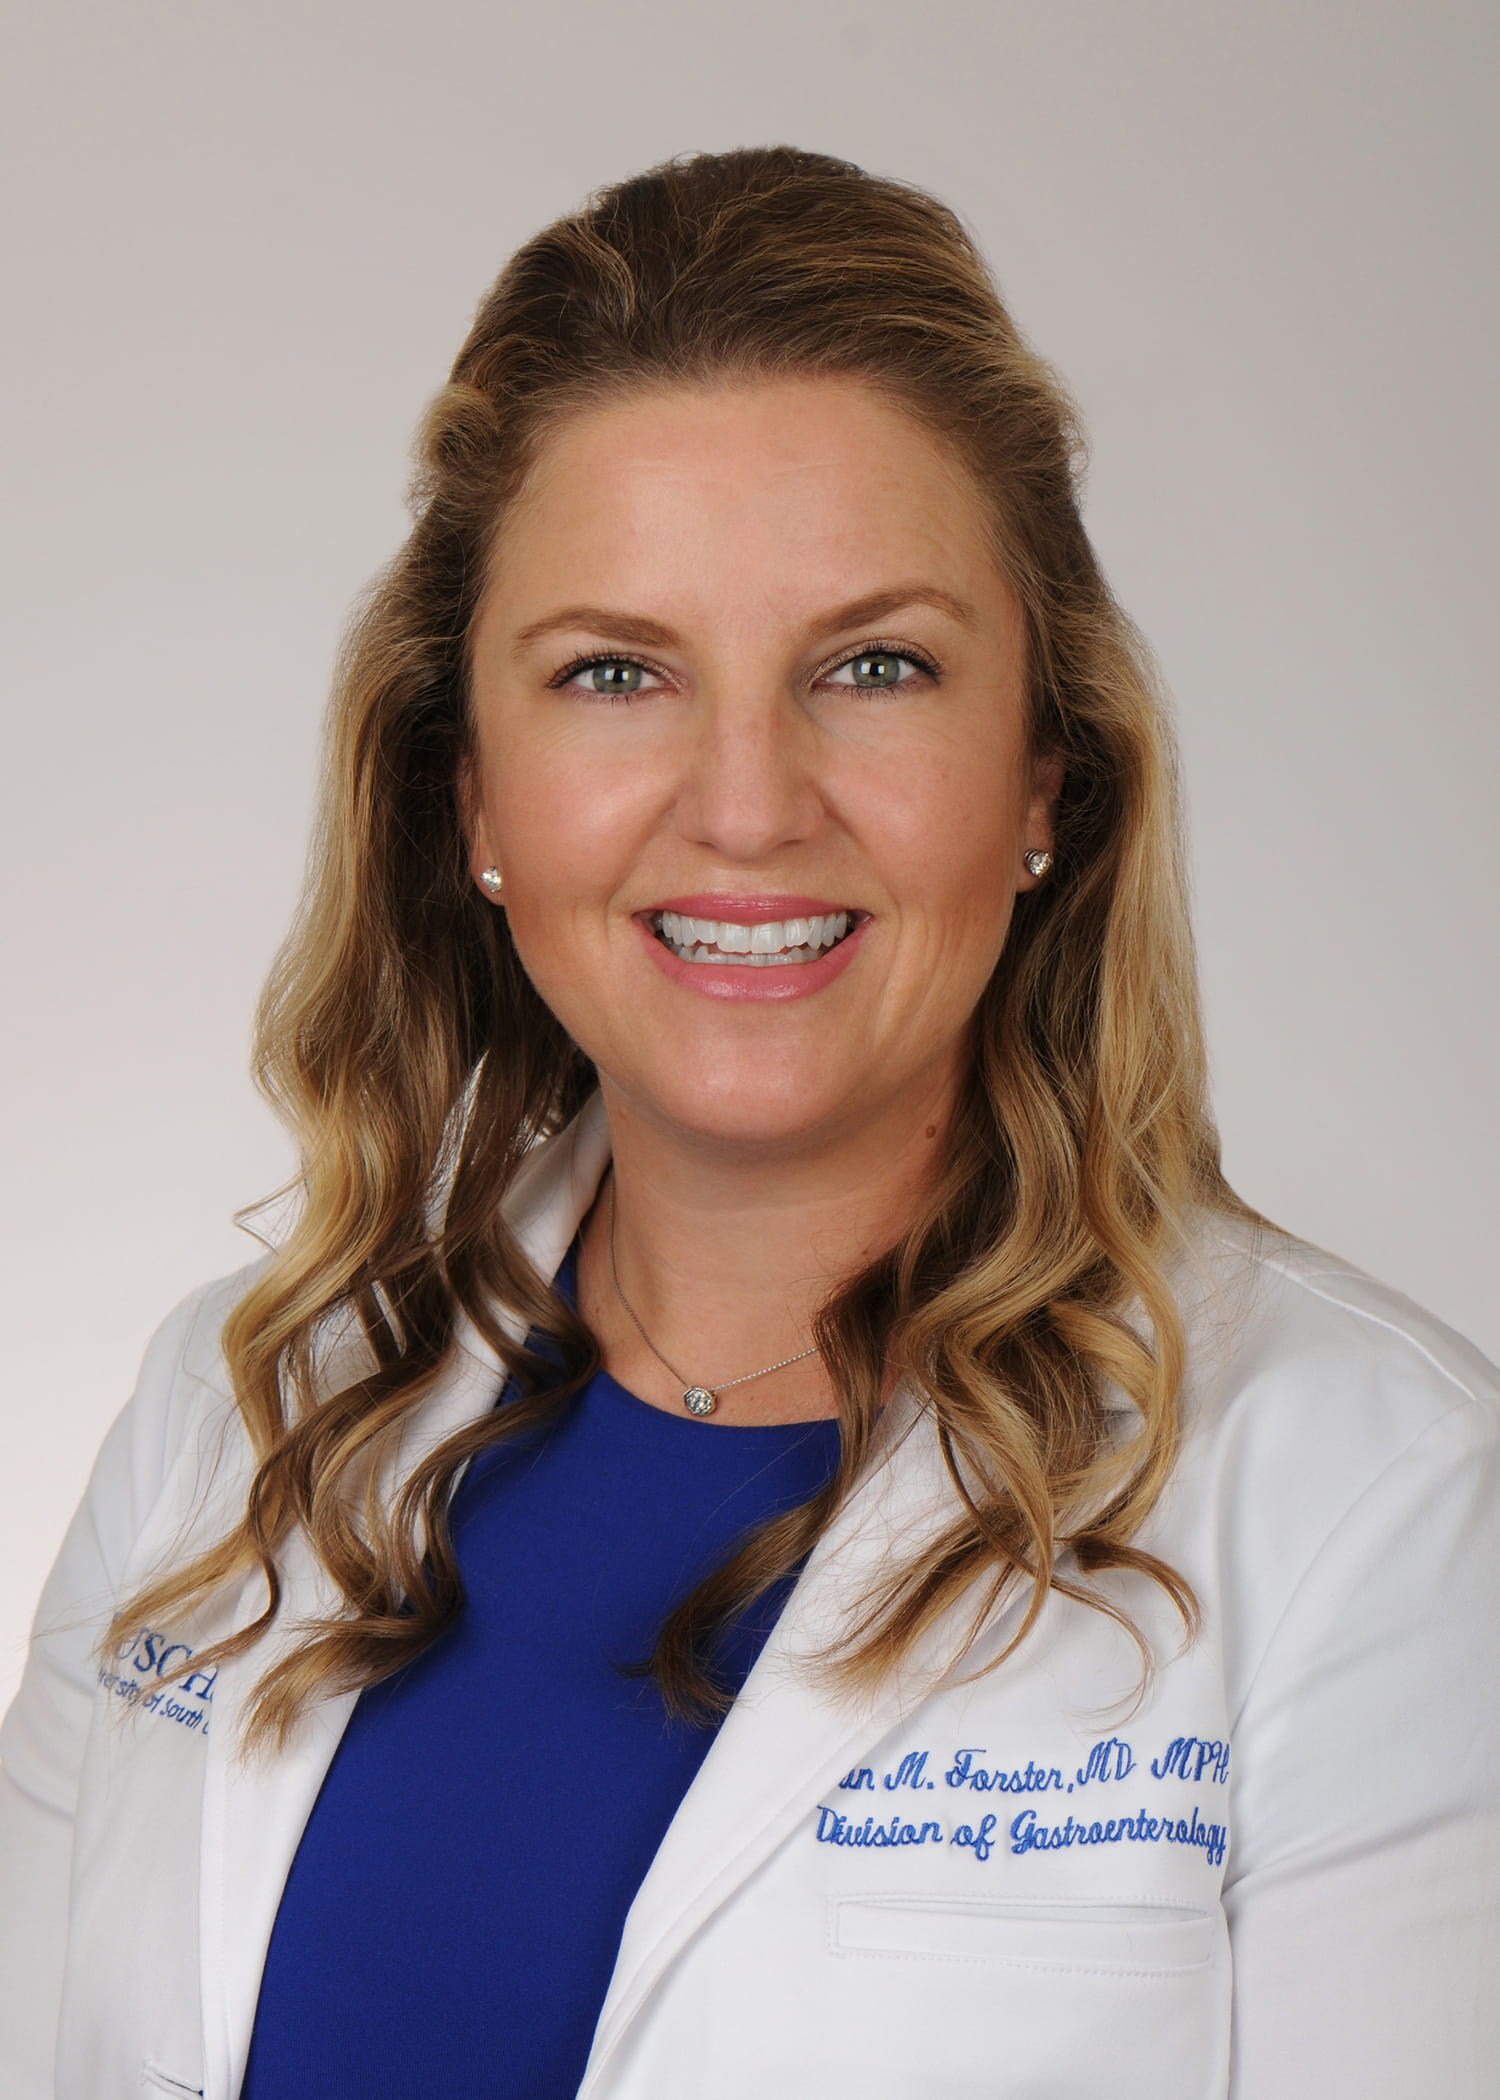 Erin Forster, M.D., MPH